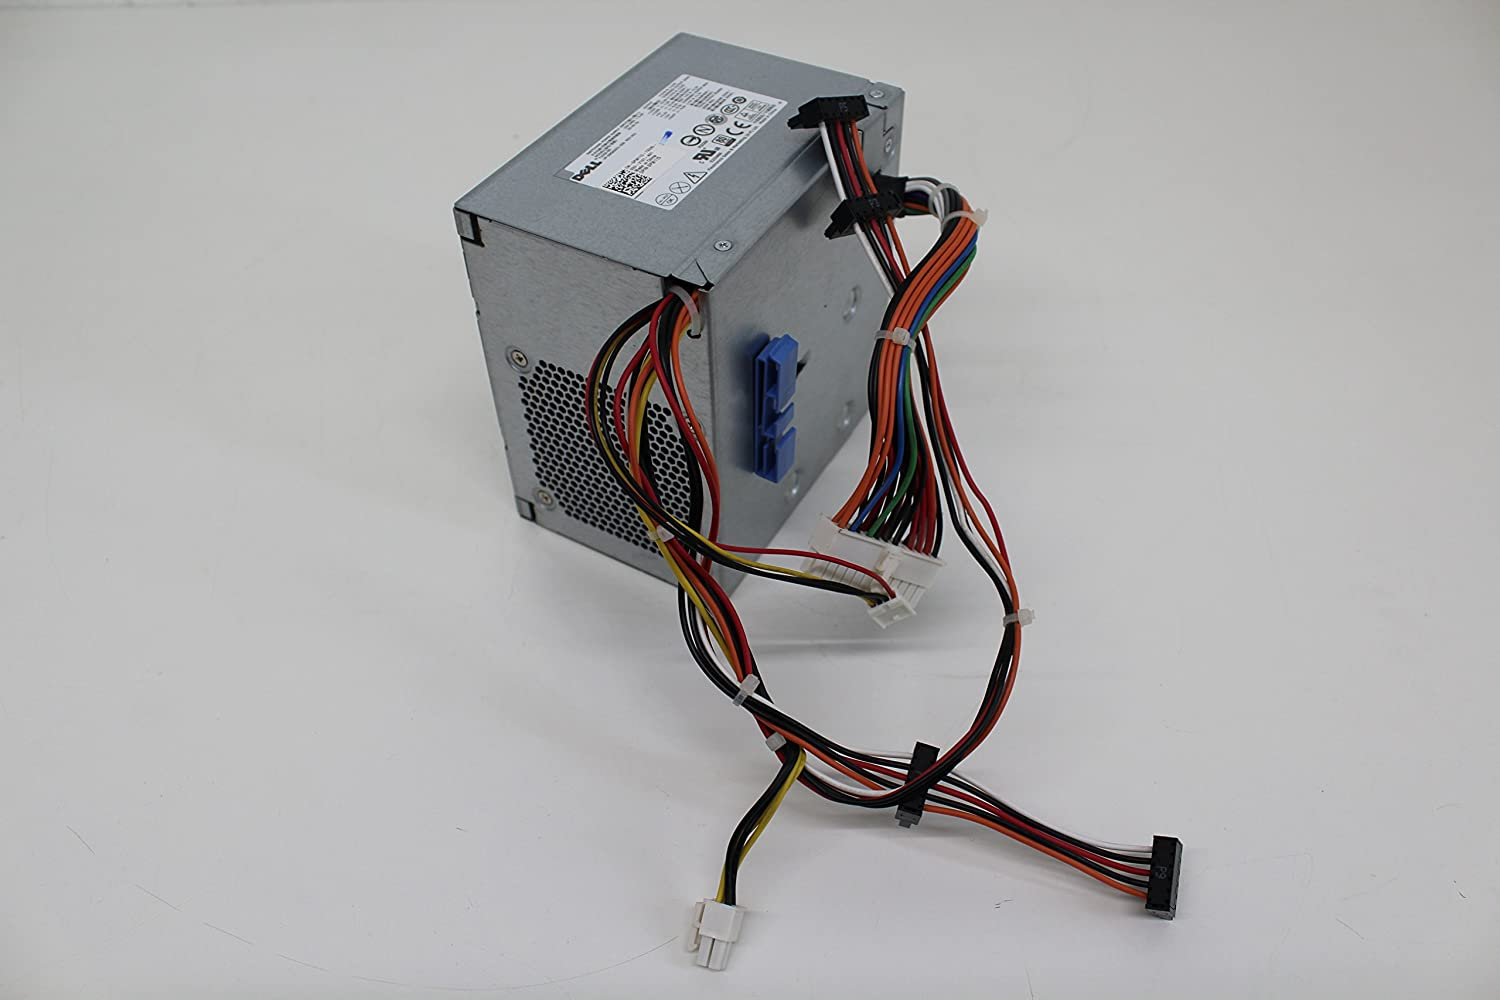 Genuine Dell 255W Power Supply For Dell Optiplex 360, 380, 580, 760, 780, 960. P/N: N805F PW115 FR607. Part Numbers: L255EM-01, F255E-00, H255PD-00